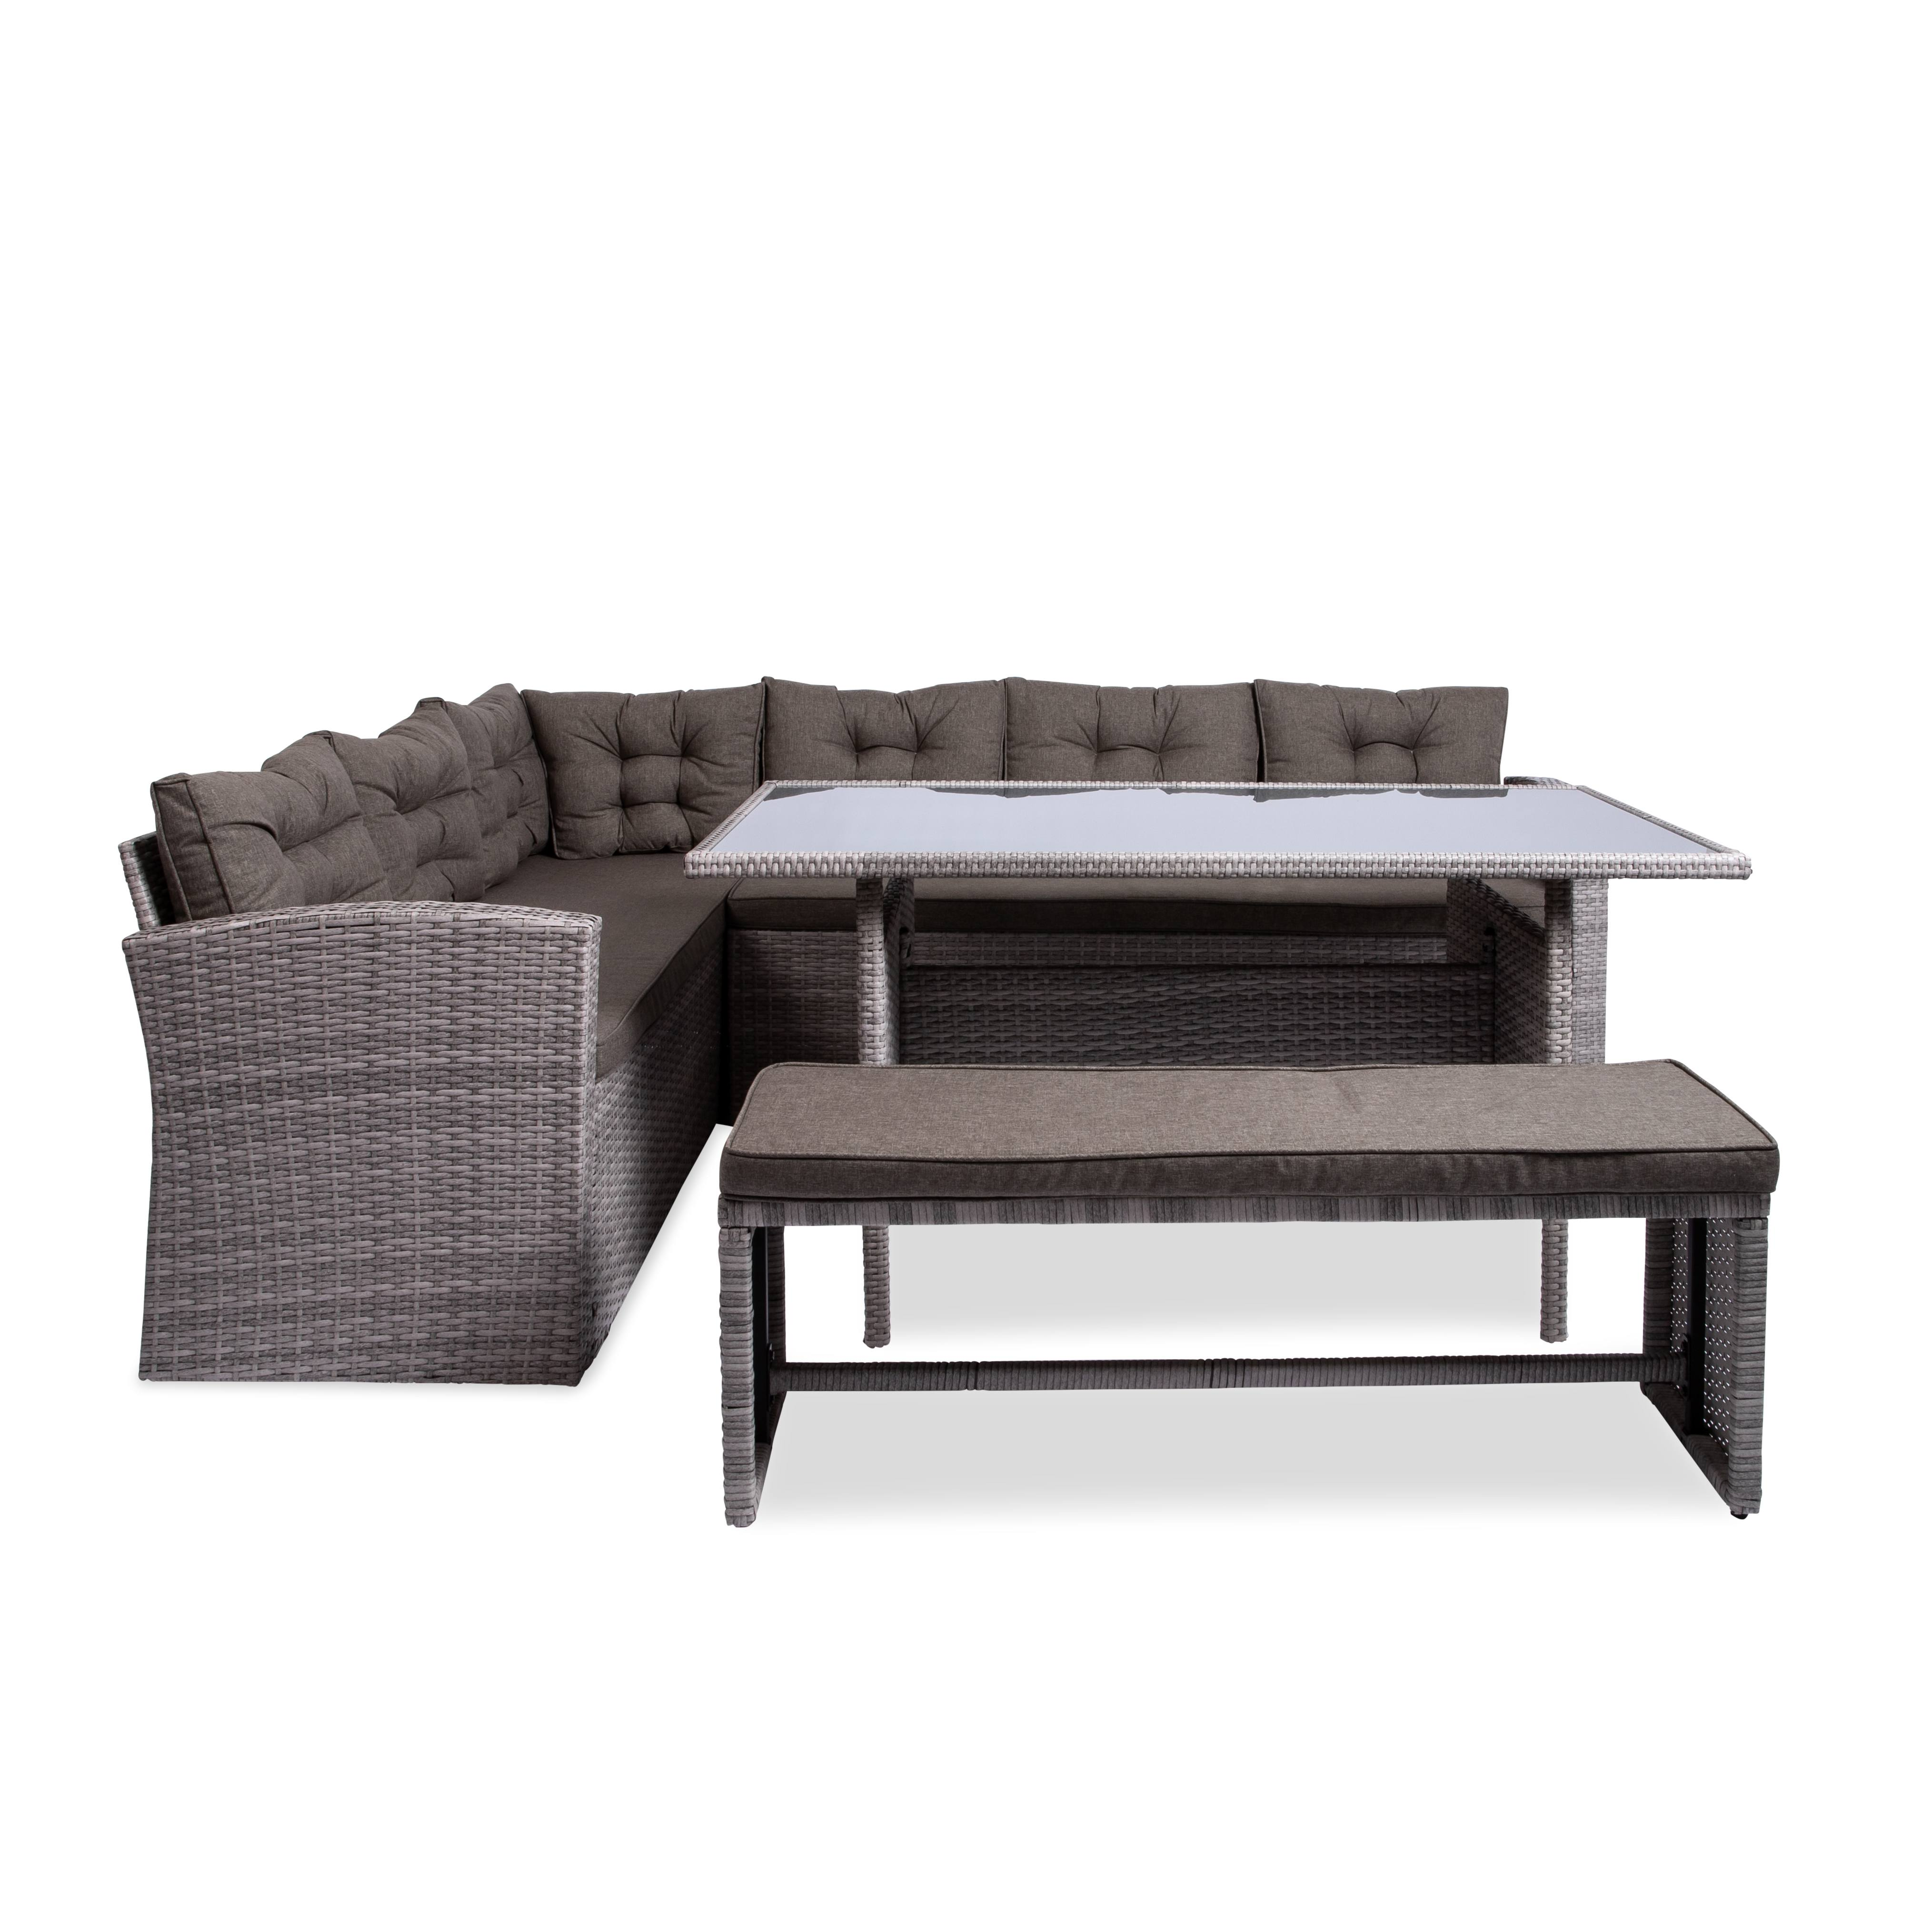 full shot of the caban outdoor couch dining table set